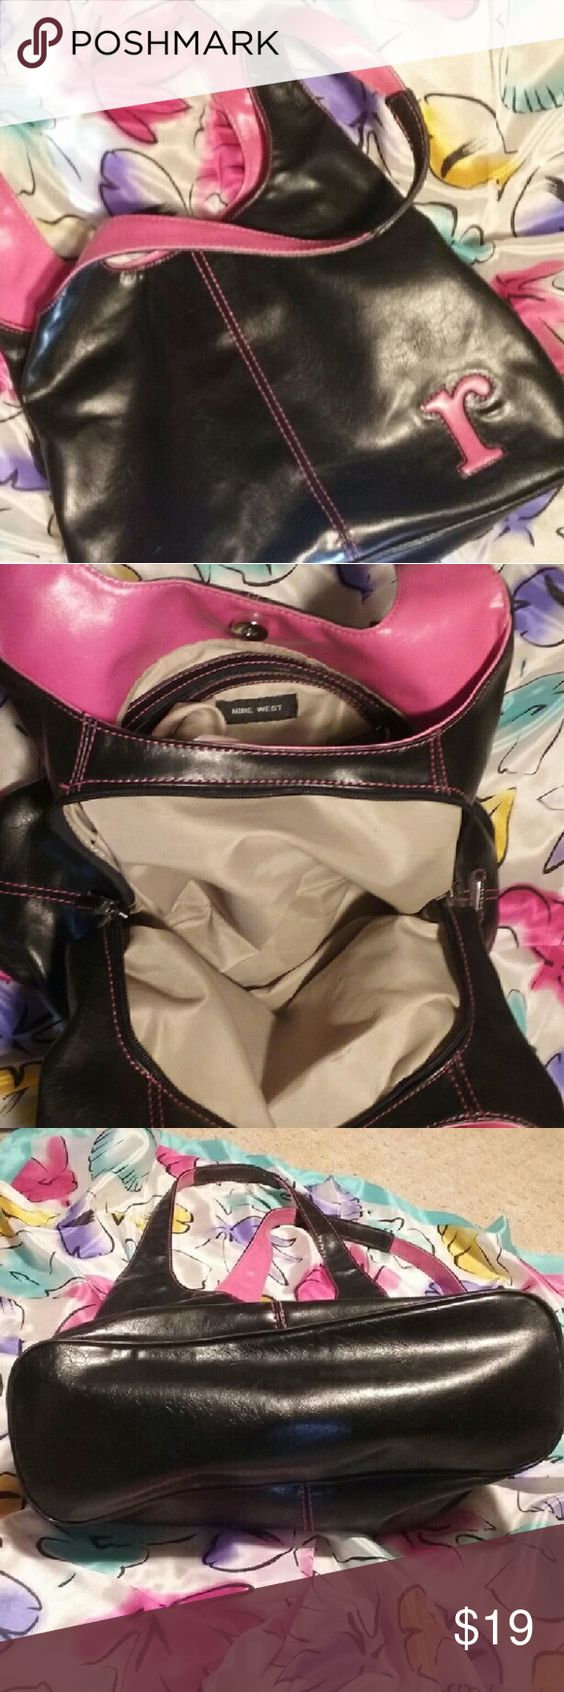 """Calling all R's! Black/pink Nine West purse Beautiful monogrammed vegan leather purse in glossy black and fuschia. 15 x  8.5 x 4.5"""" with a 10"""" drop. 3 compartments, middle one zips, magnetic snap closure, 1 inner zip and several slides. Would be a wonderful personalised gift! EUC Nine West Bags Shoulder Bags"""